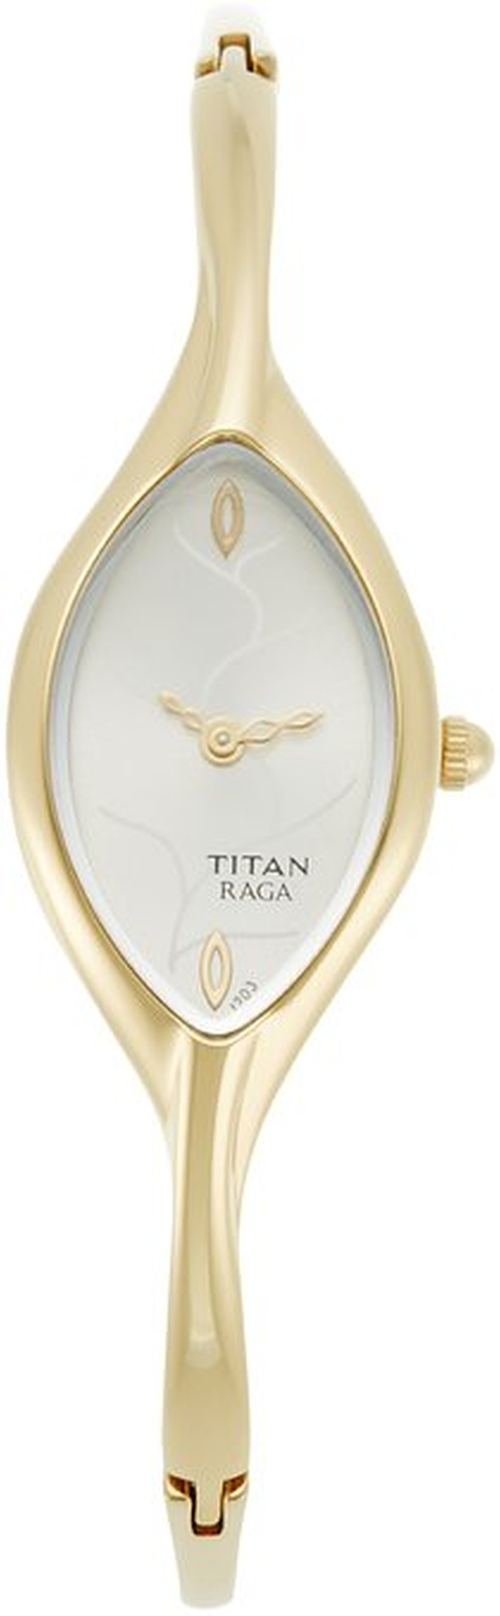 Jewelry-Inspired Gold-Tone Bangle Watch by Titan in Mr. & Mrs. Smith